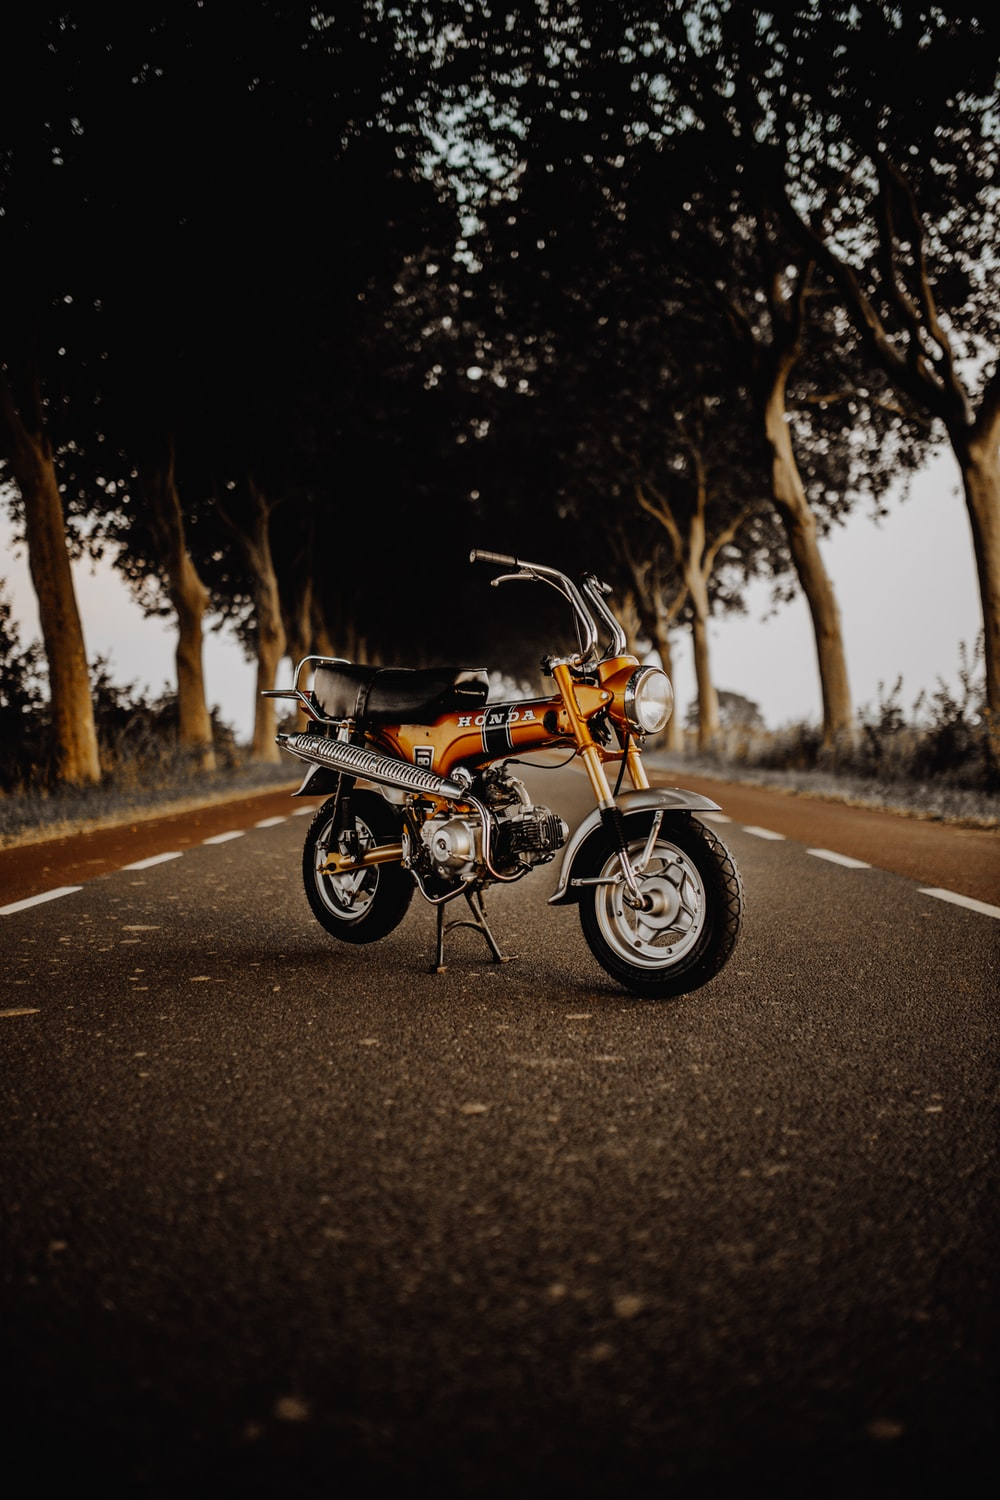 black and brown motorcycle on road during daytime